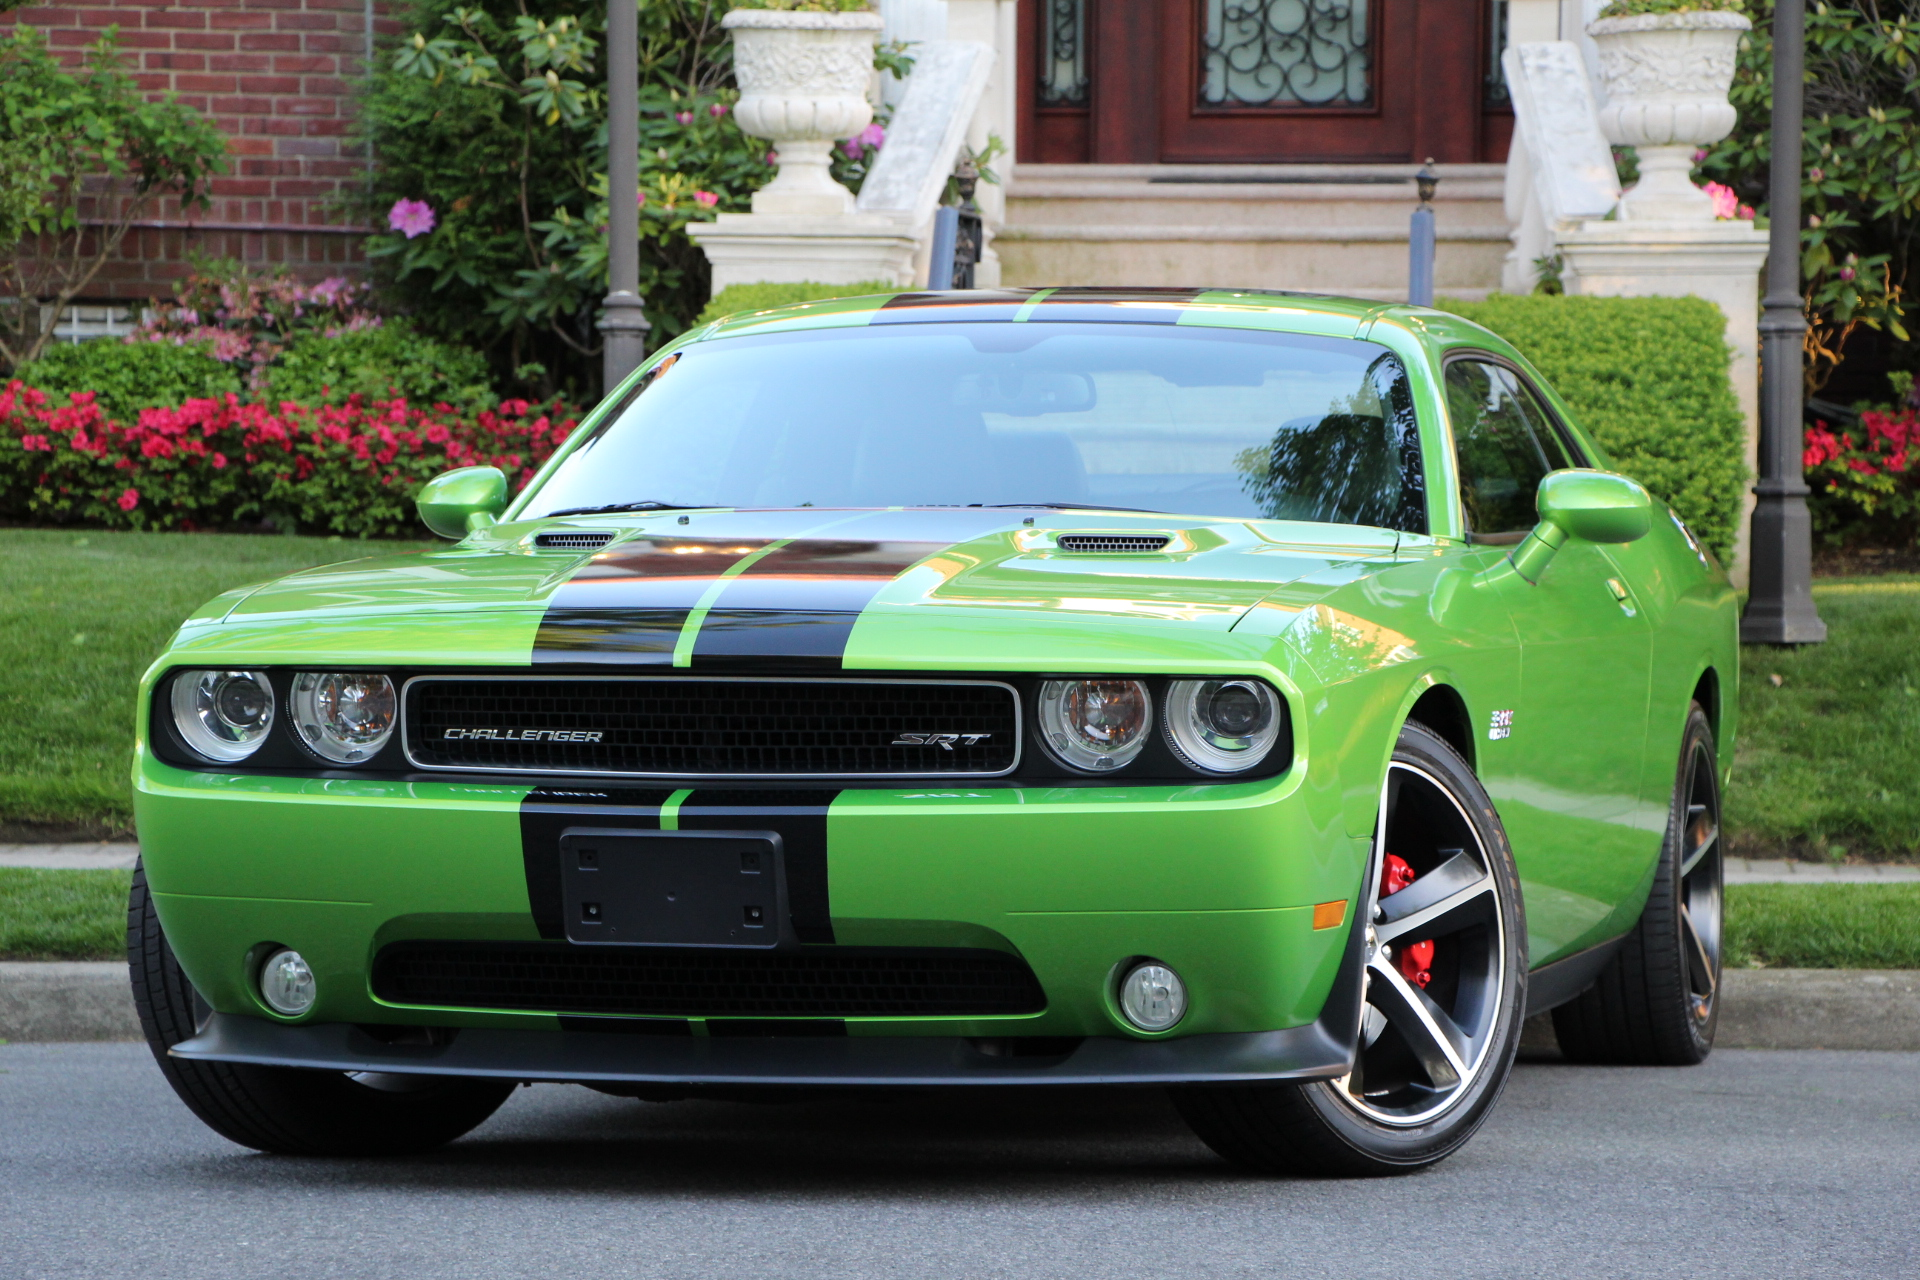 Buy Used 2011 Dodge Challenger Srt8 392 Edition For 37 900 From Trusted Dealer In Brooklyn Ny